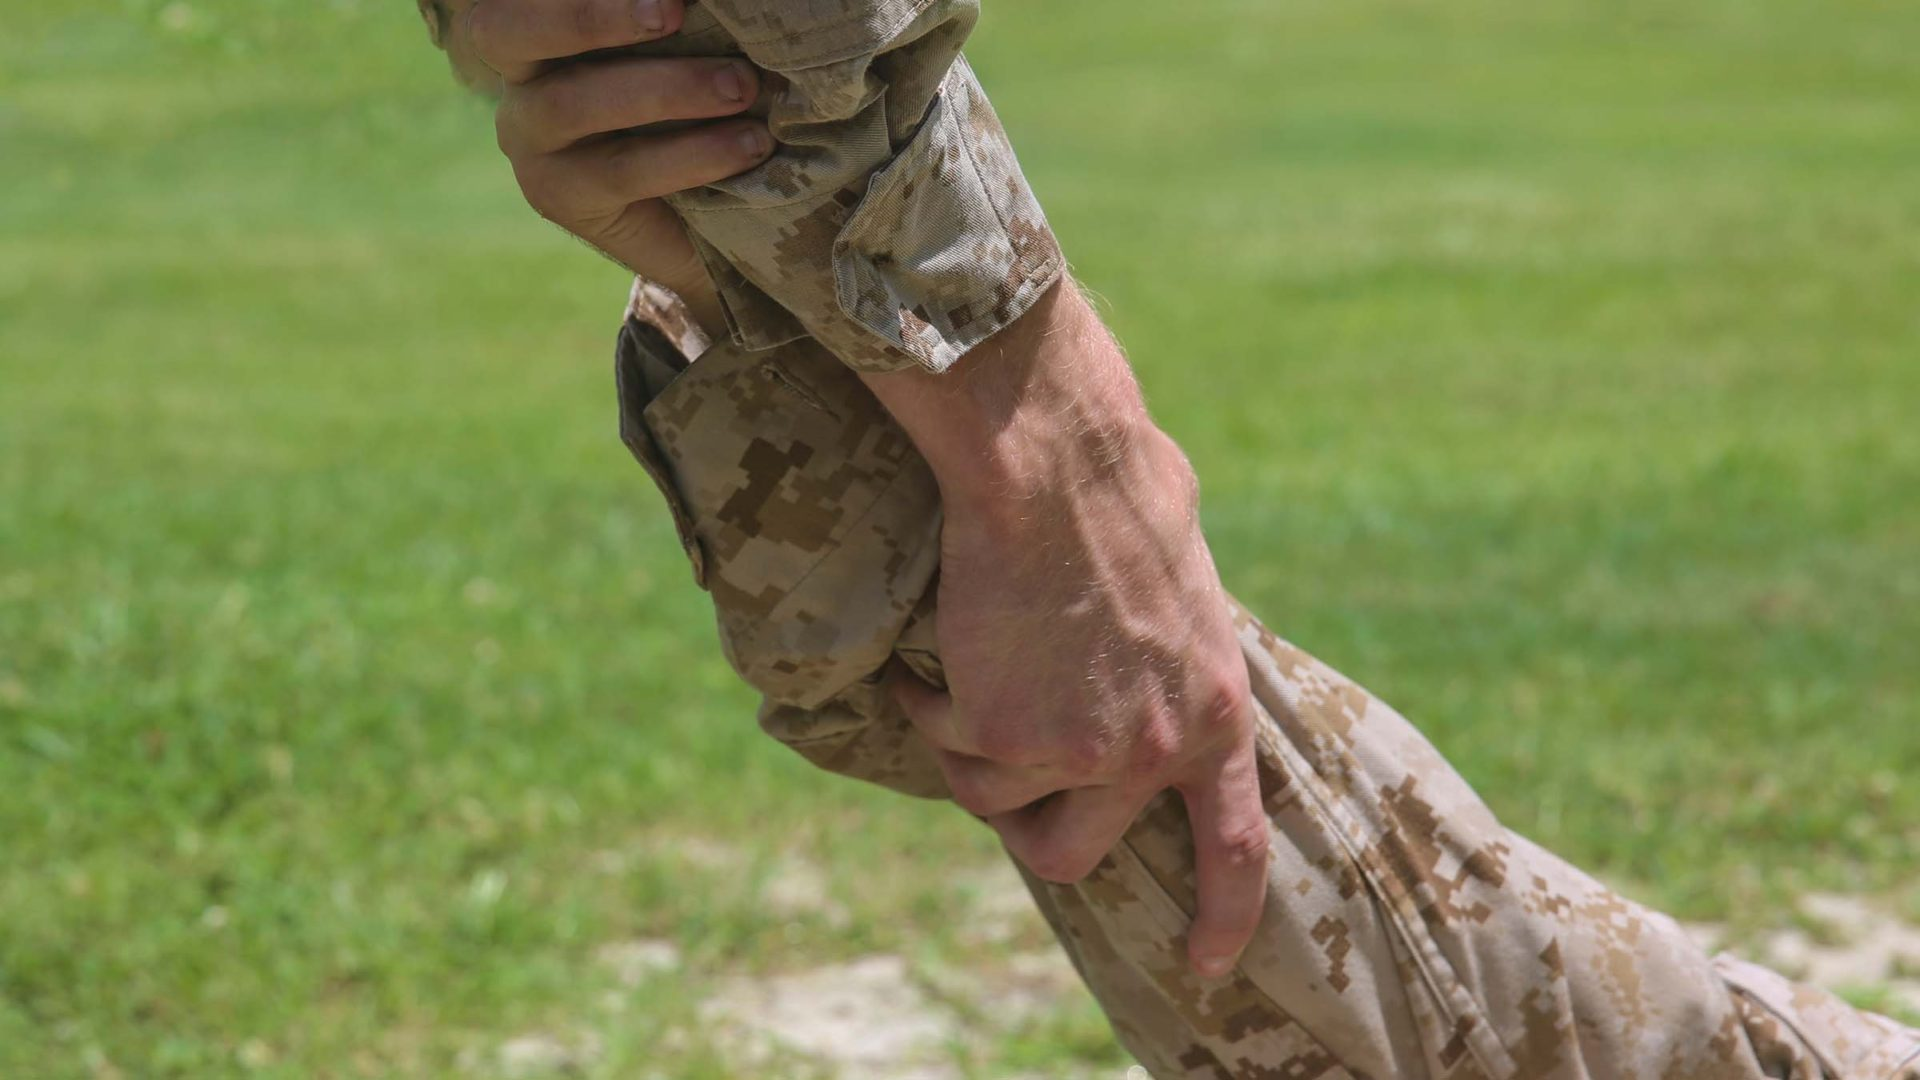 Servicemember reaching out and helping up another.